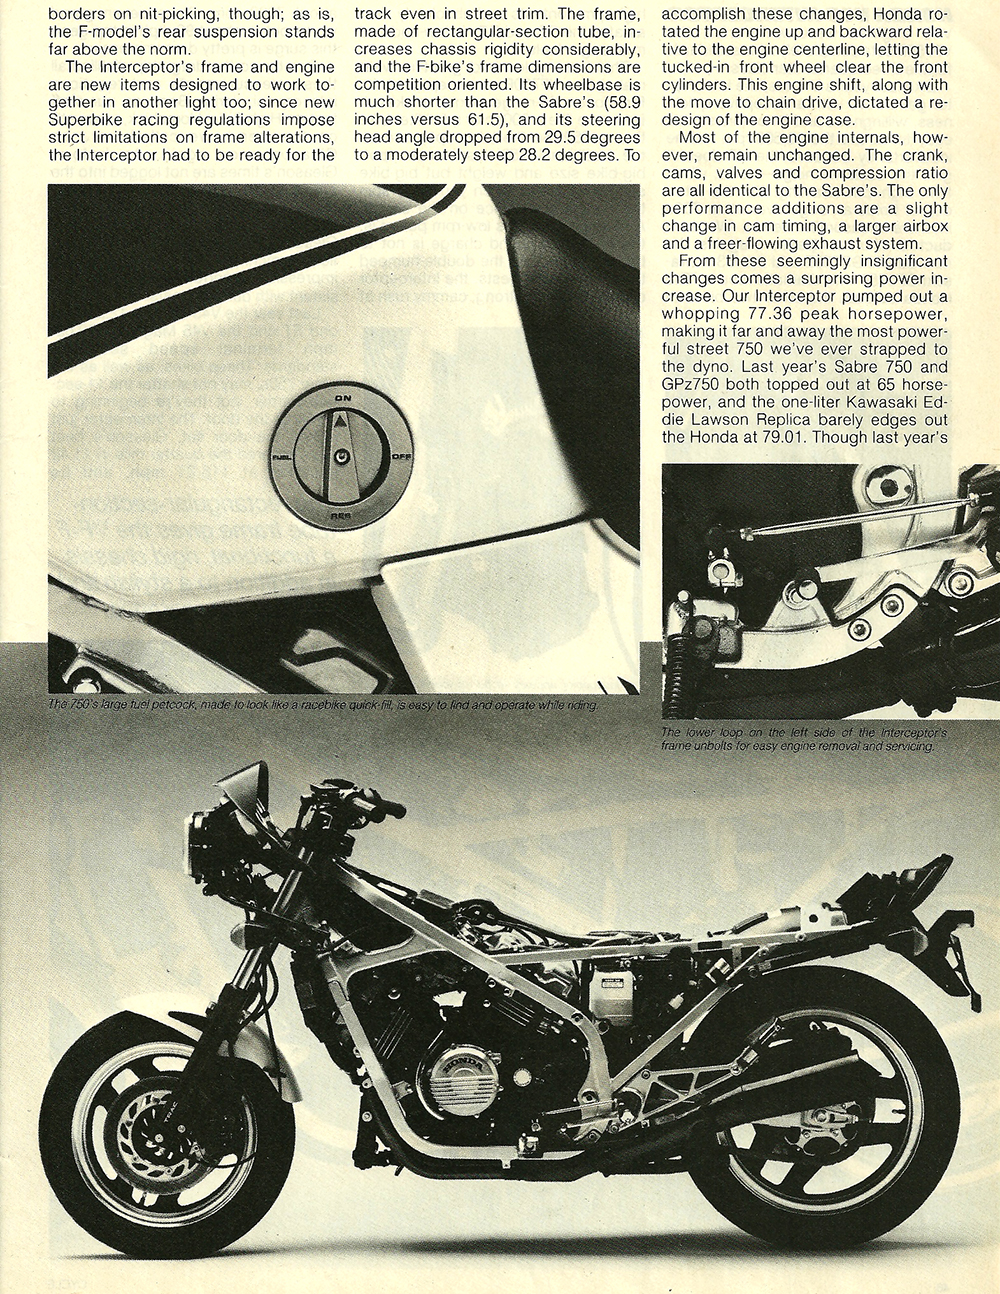 1983 Honda V45 Interceptor road test 06.jpg